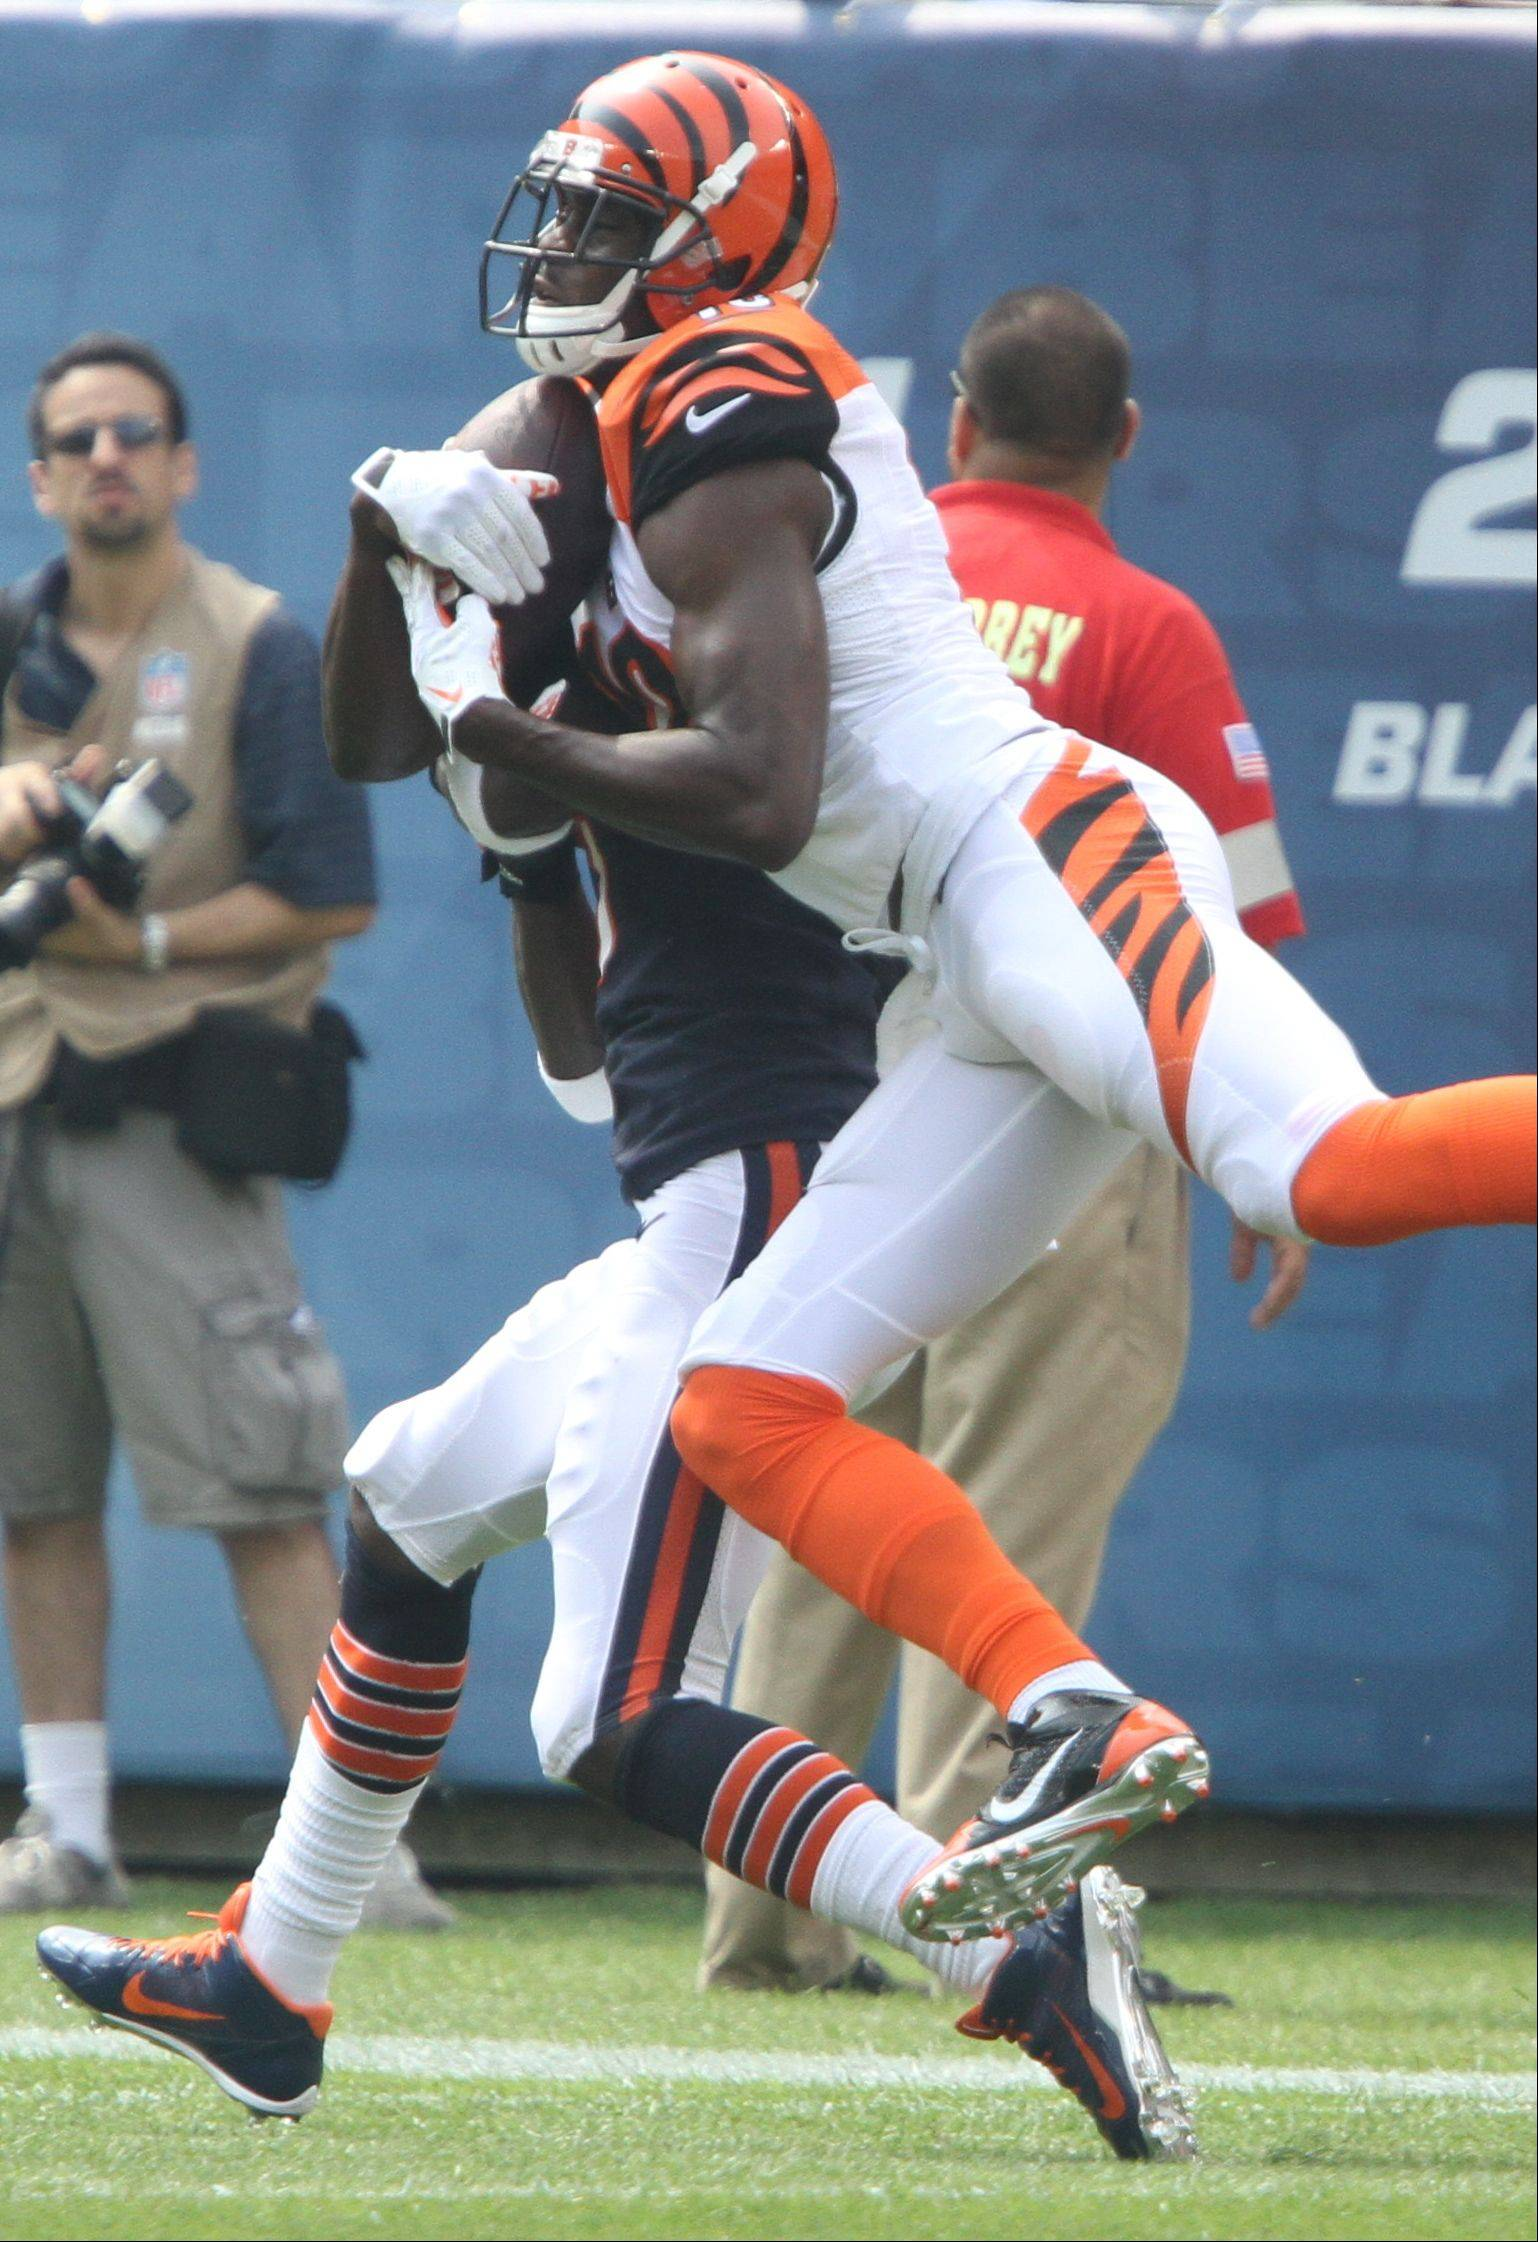 Cincinnati Bengals wide receiver A.J. Green makes a catch during the Bears opening day game against the Cincinnati Bengals Sunday at Soldier Field in Chicago.